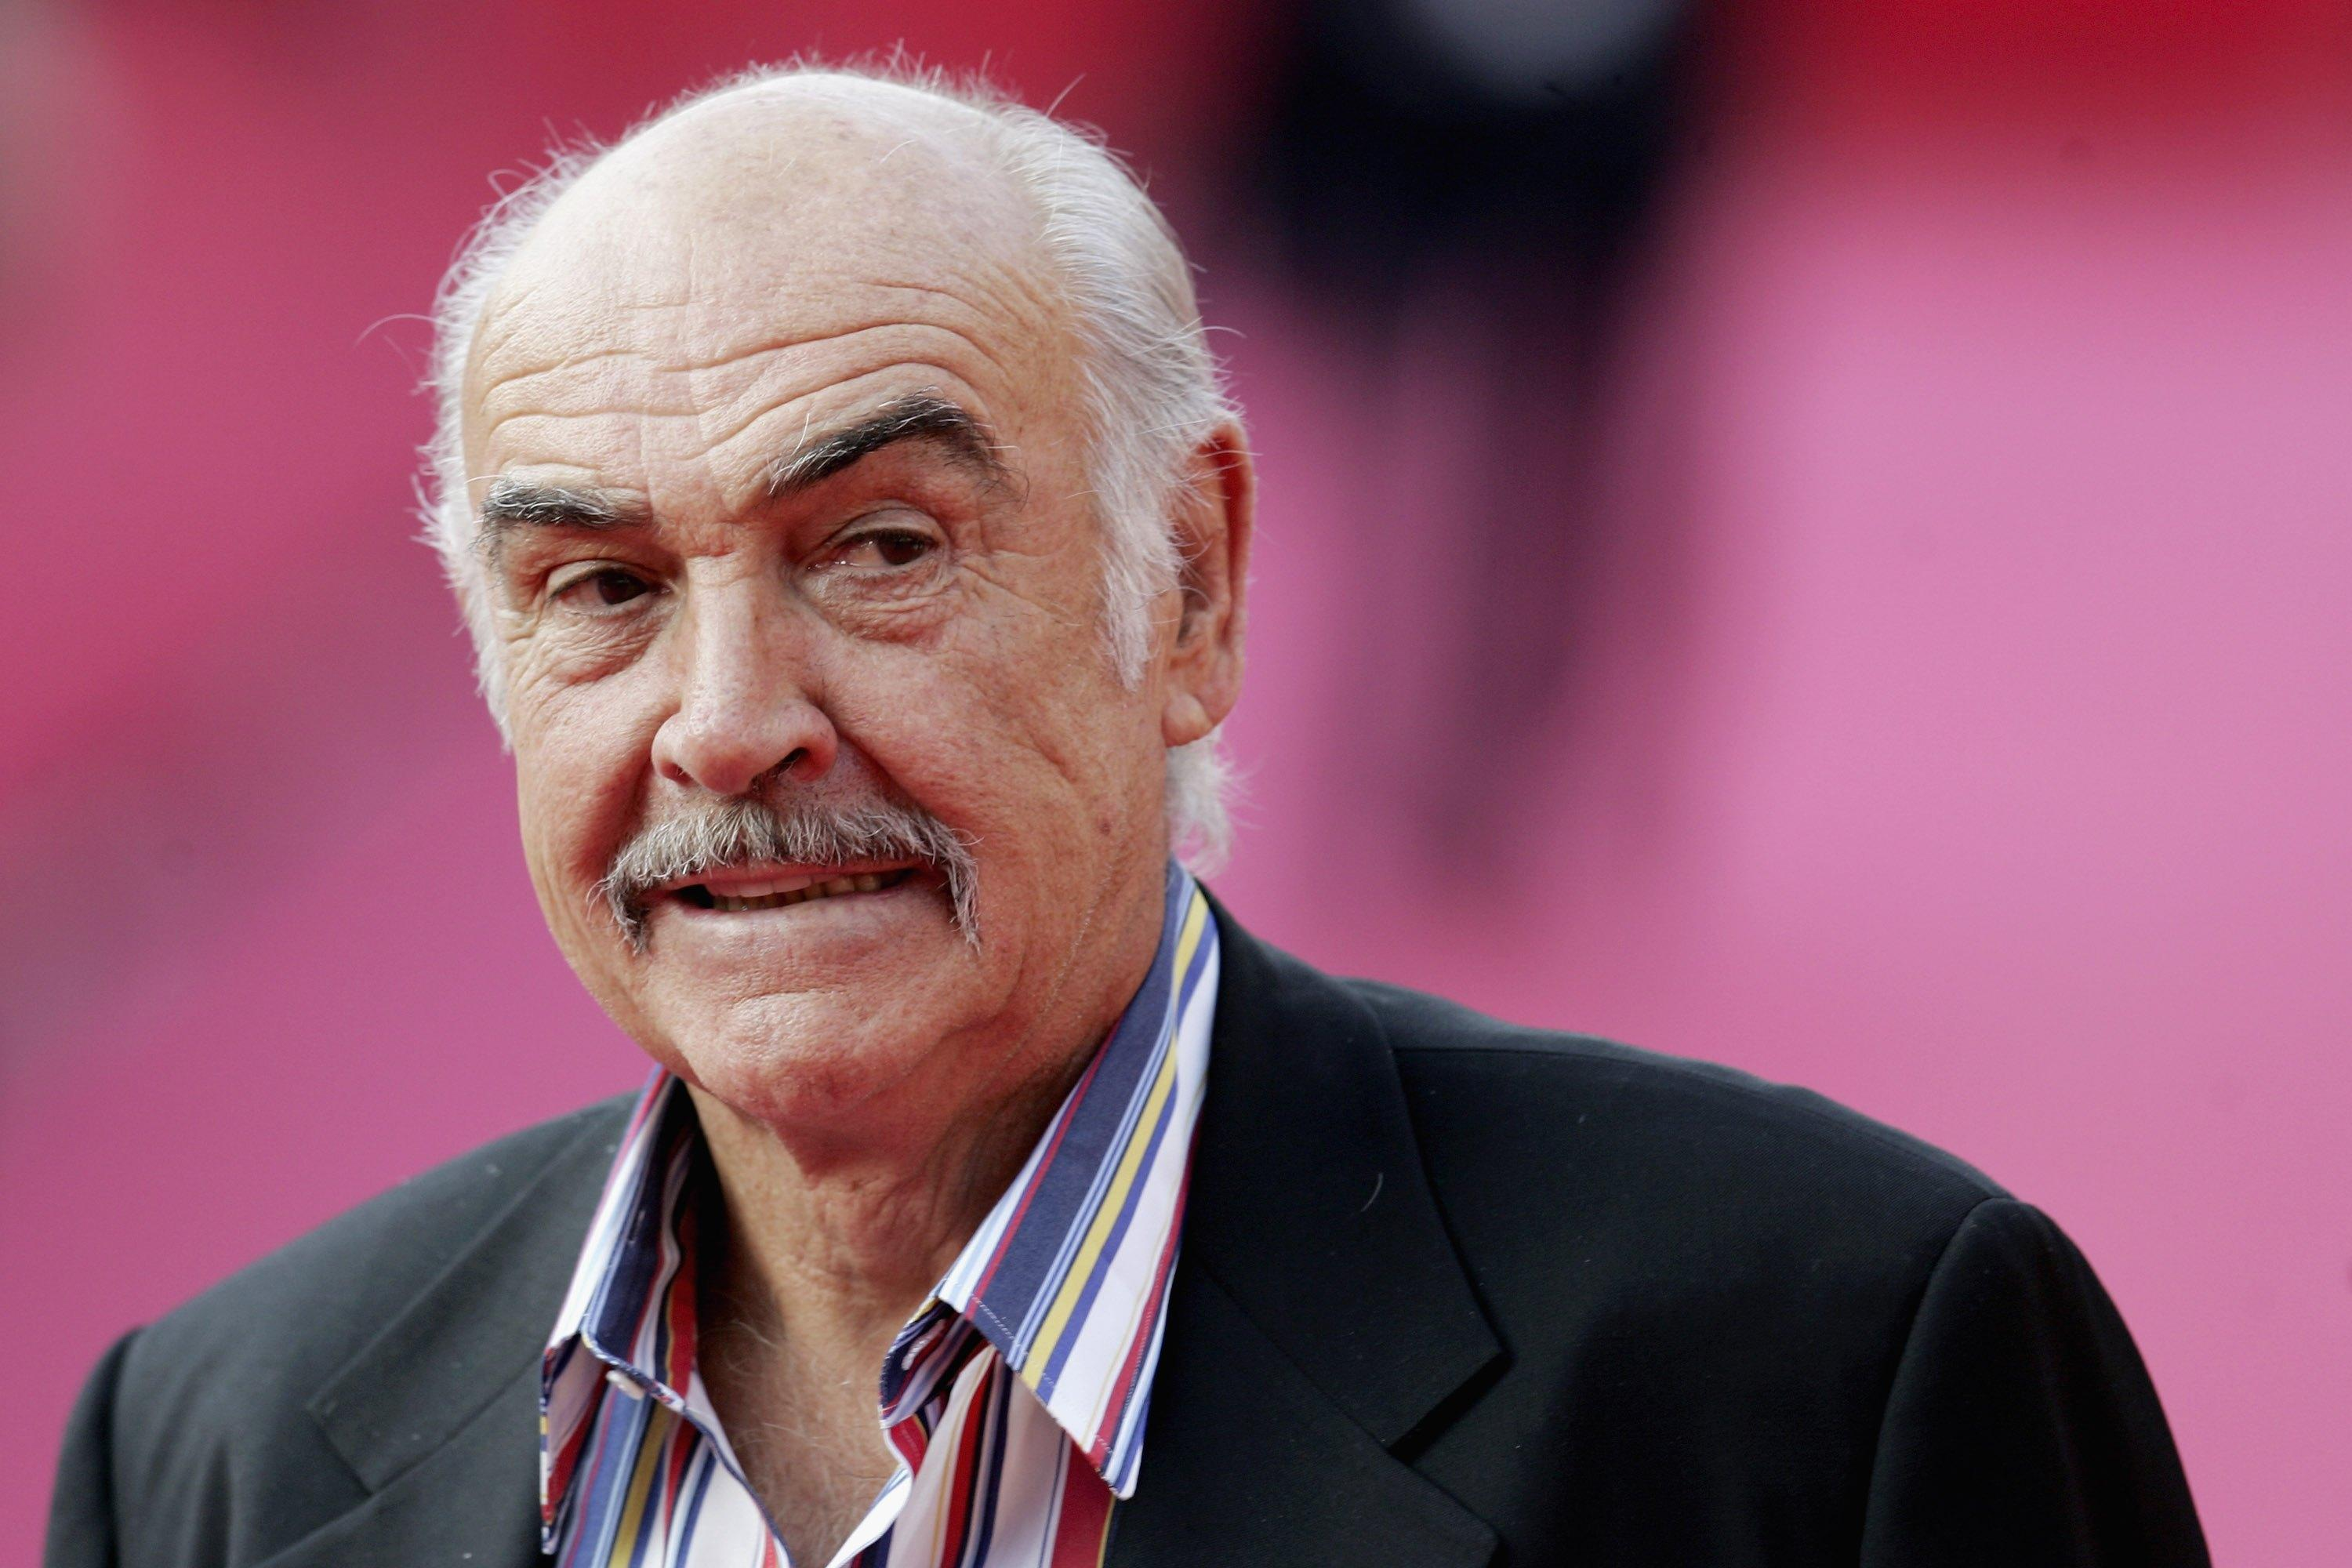 Daniel Craig, Jean-Claude Van Damme and more pay tribute to Sean Connery: 'One of the true greats of cinema'